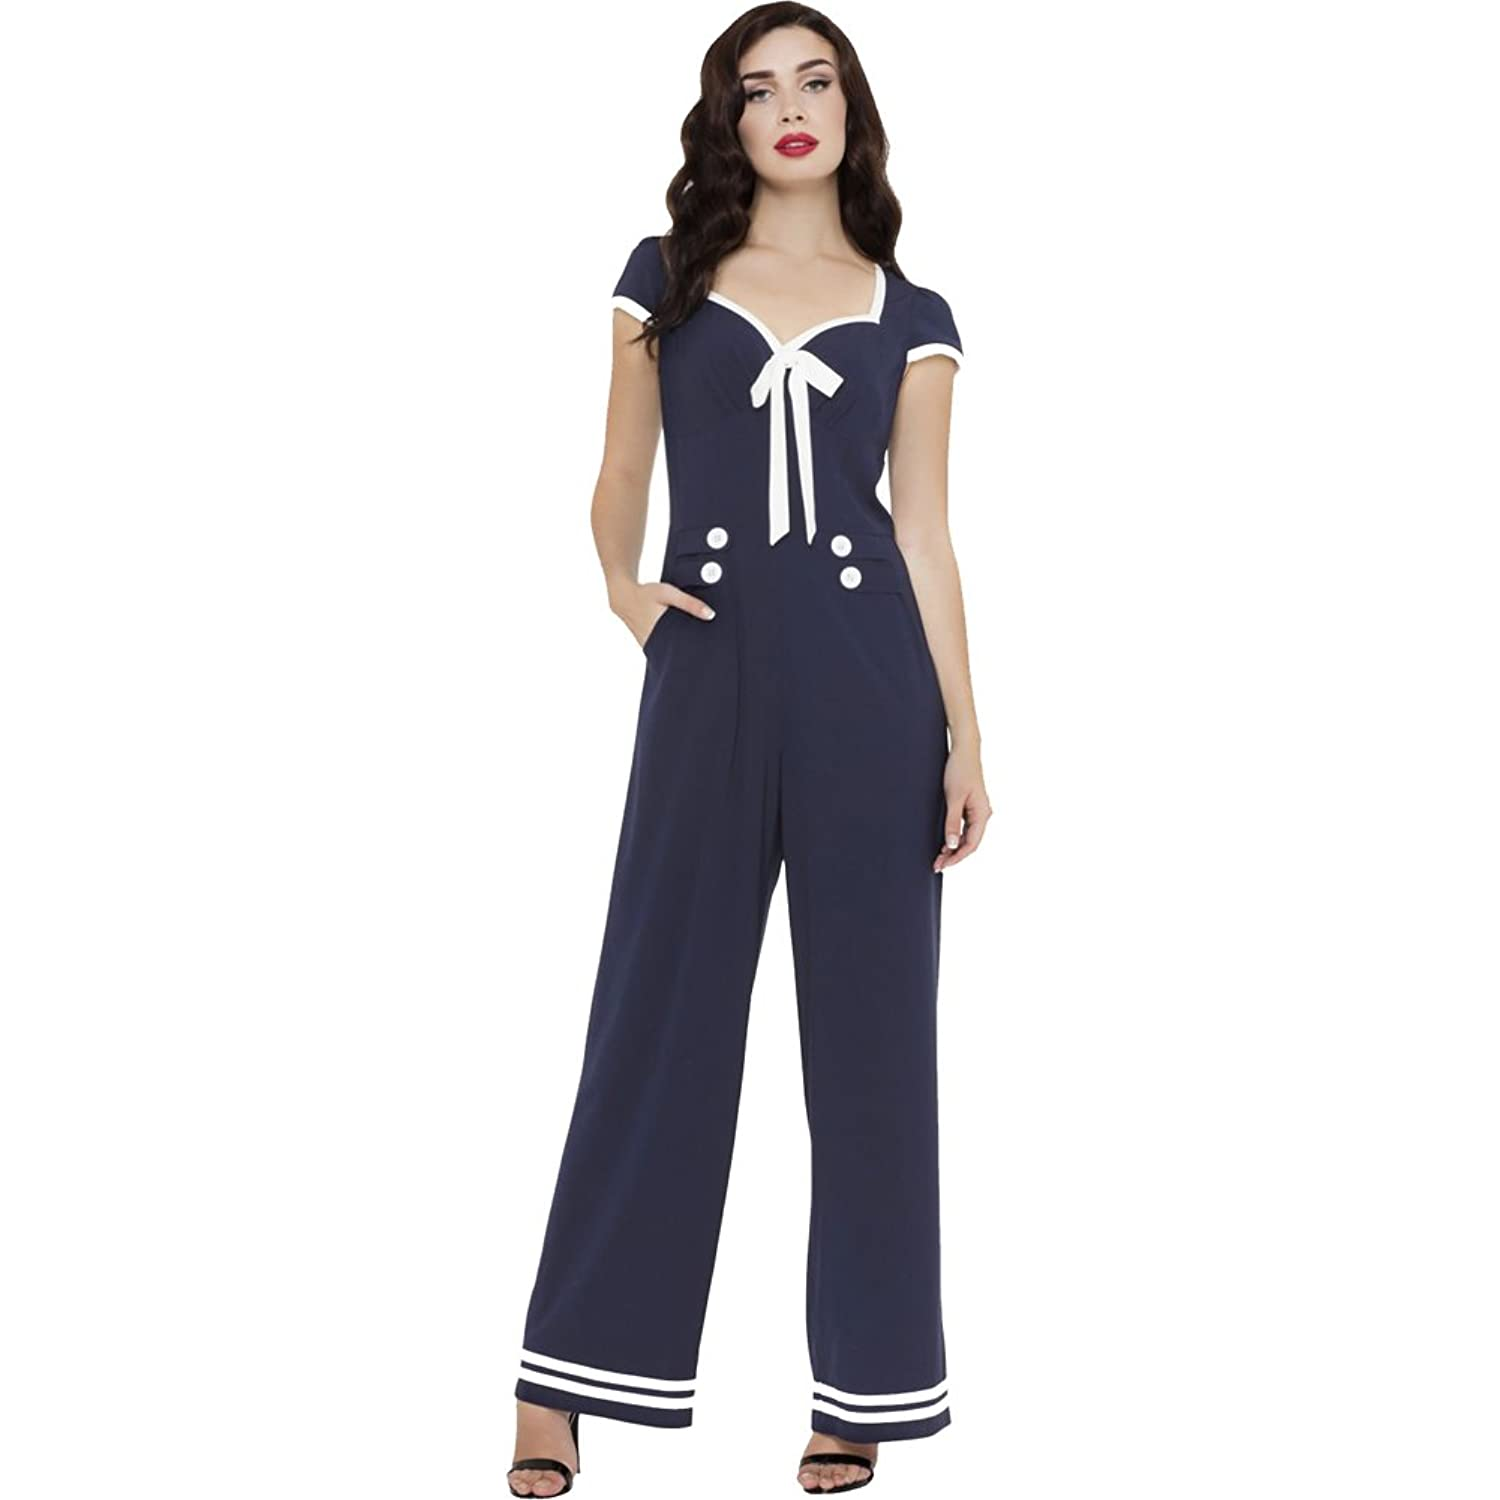 1940s Pants History- Overalls, Jeans, Sailor, Siren Suits Womens Voodoo Vixen JOLENE Nautical Stripped Wide Leg Jumpsuit Navy $73.95 AT vintagedancer.com